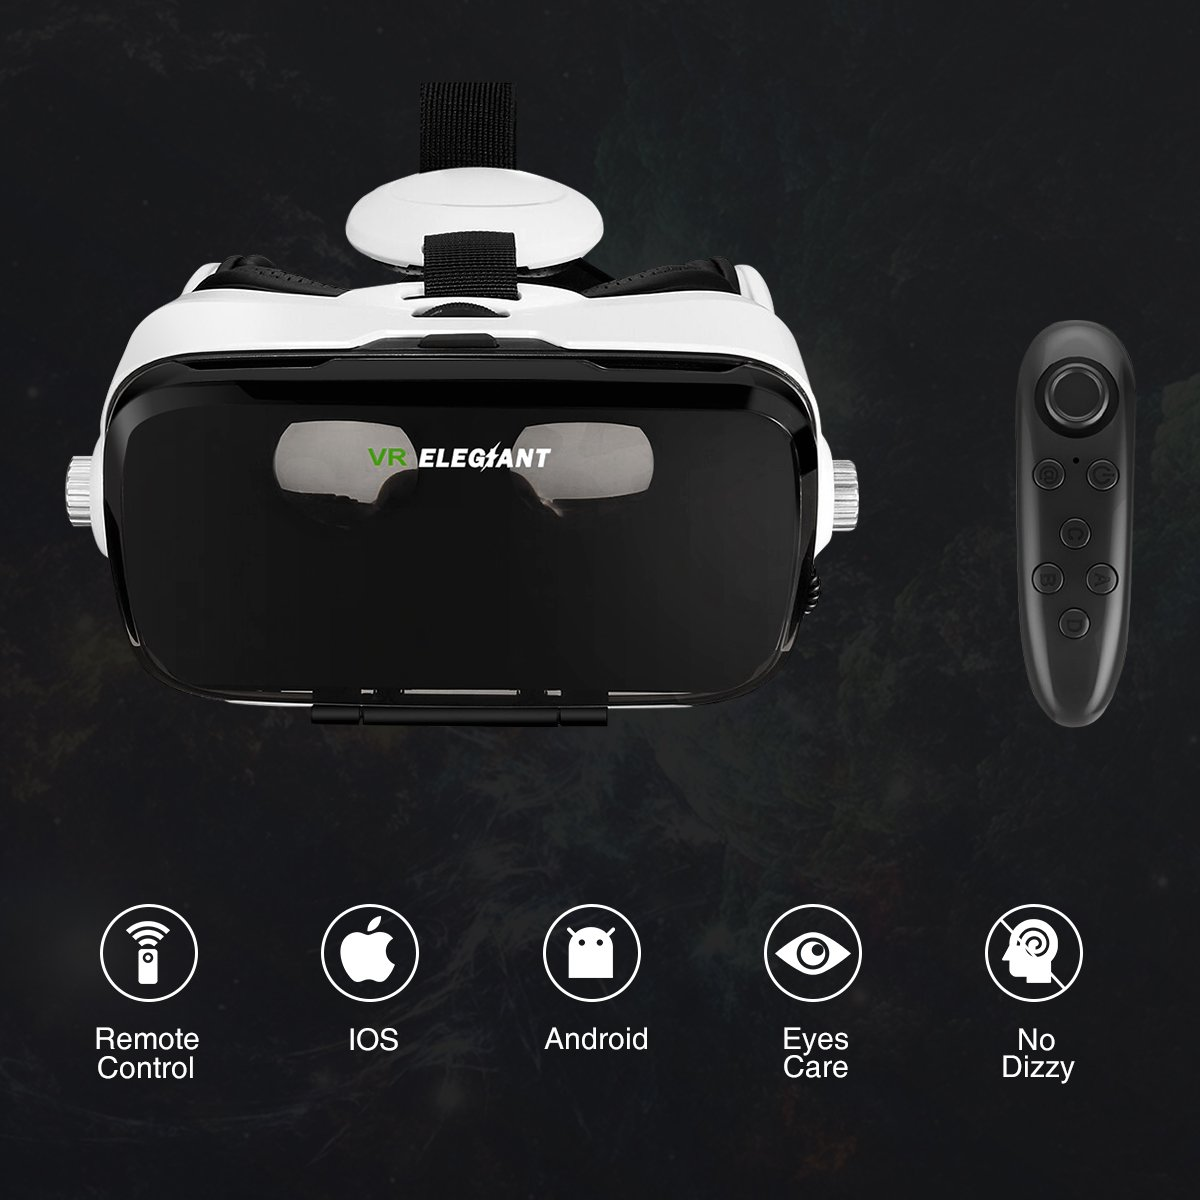 ELEGIANT VR Headset, 3D VR Glasses, Virtual Reality Headset Built-in Headphone by ELEGIANT (Image #7)